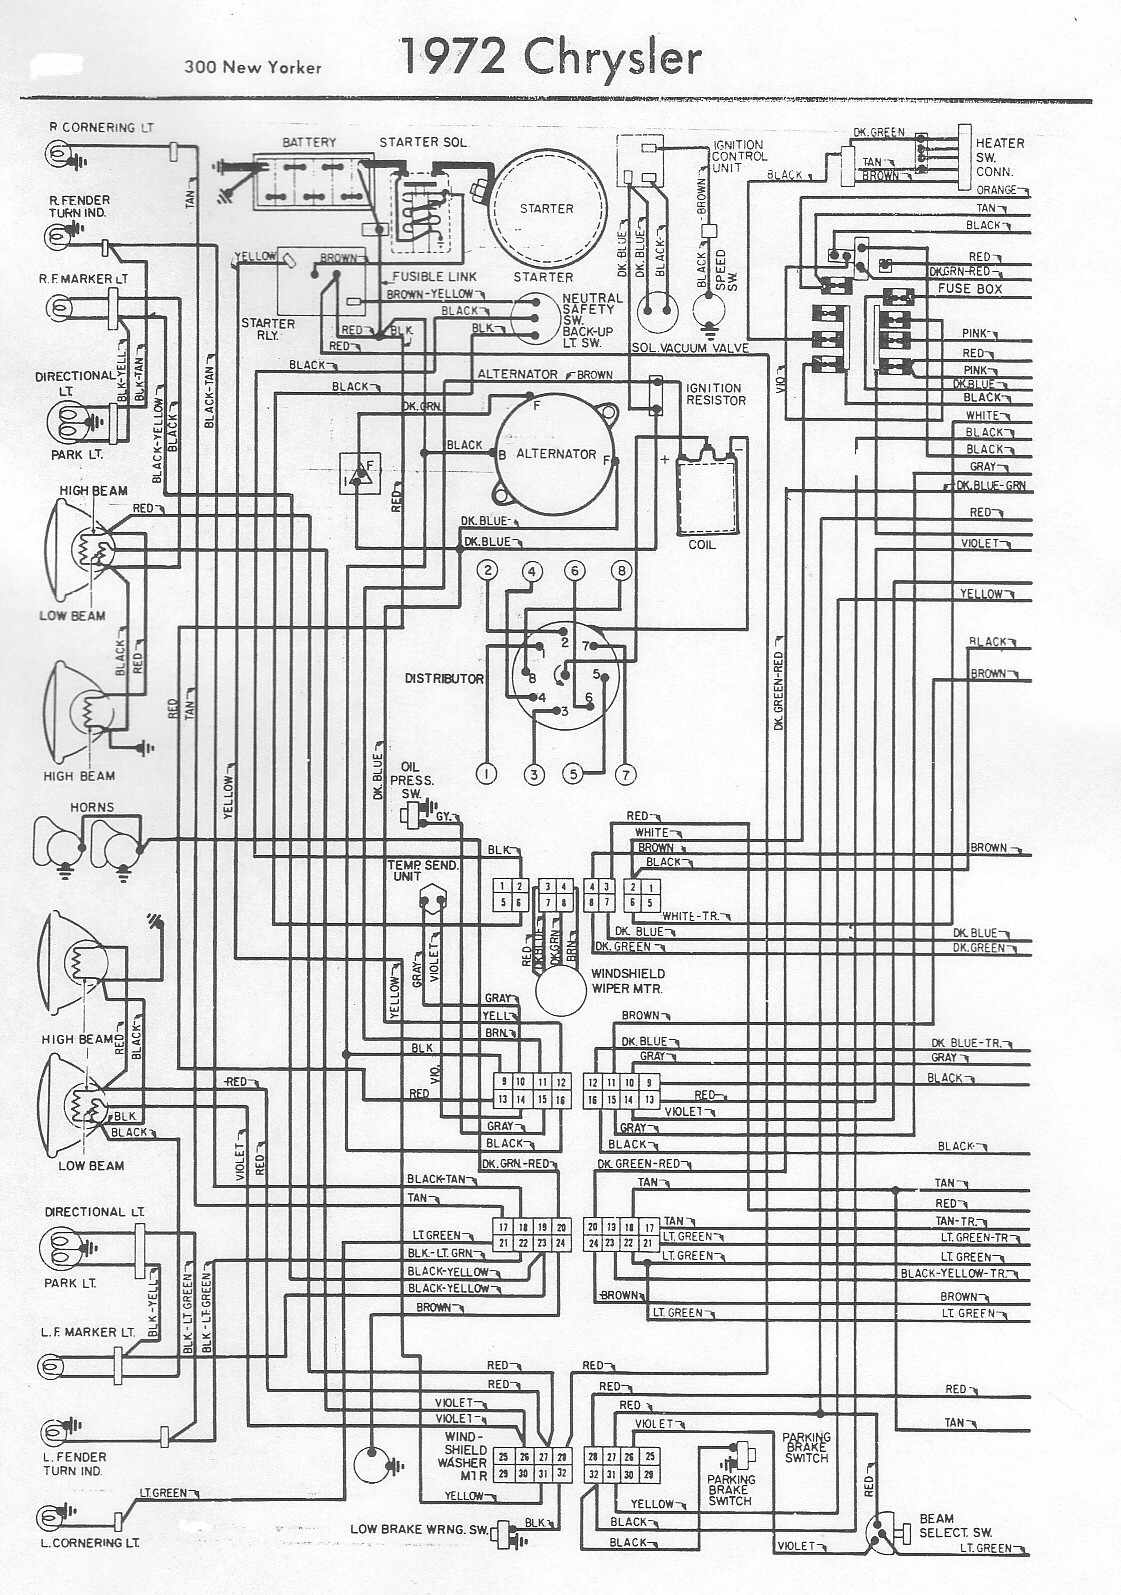 starting circuit diagram for the 1948 50 packard custom 8 4 yuk3diagram 1948 chrysler wiring diagram wiring diagram schematic circuit rh cp thefarmerstruck com